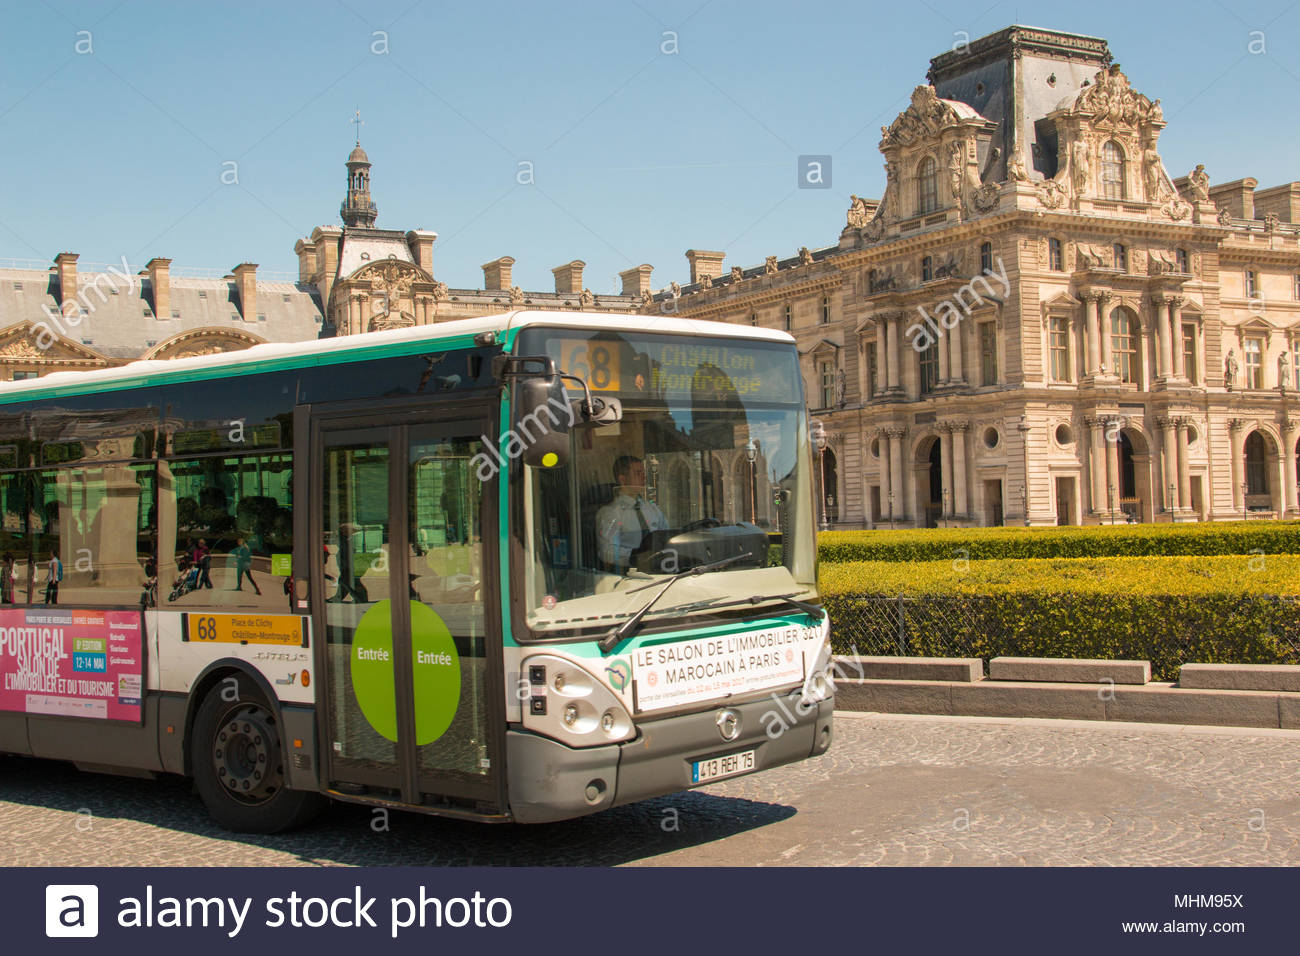 france paris tourist bus stock photos france paris tourist bus stock images alamy. Black Bedroom Furniture Sets. Home Design Ideas